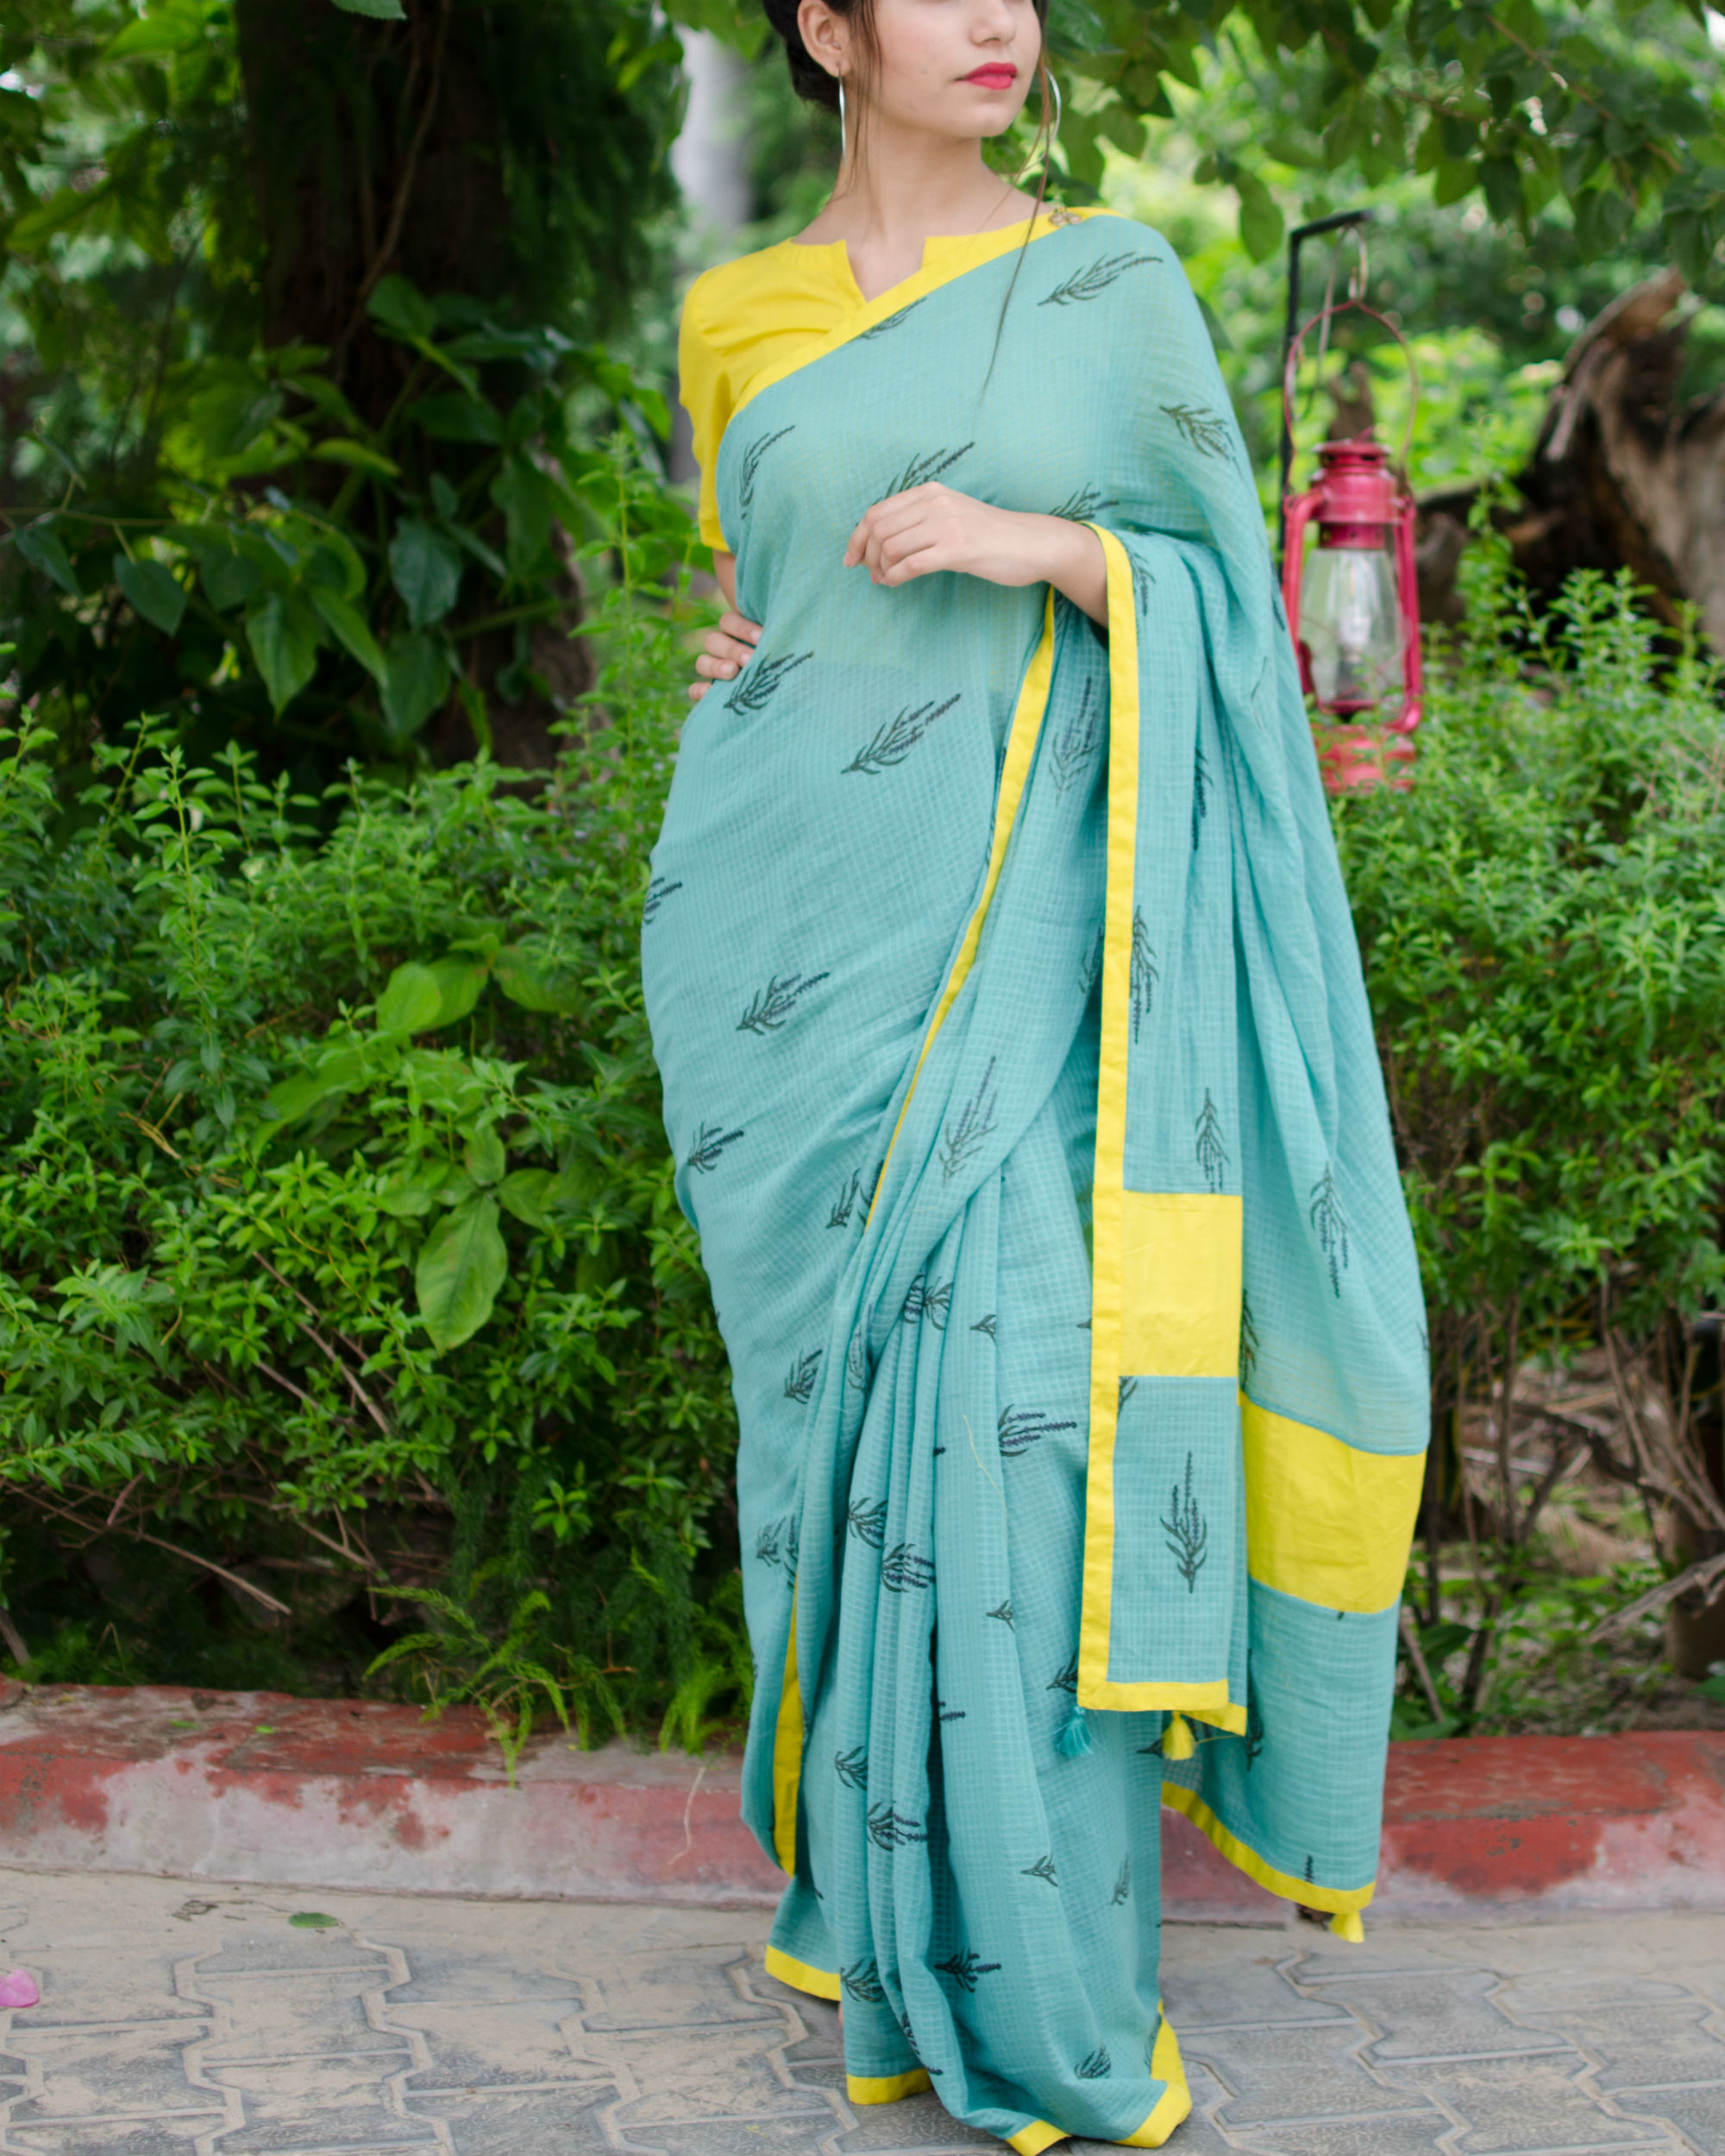 Turquoise sari with crop top blouse.